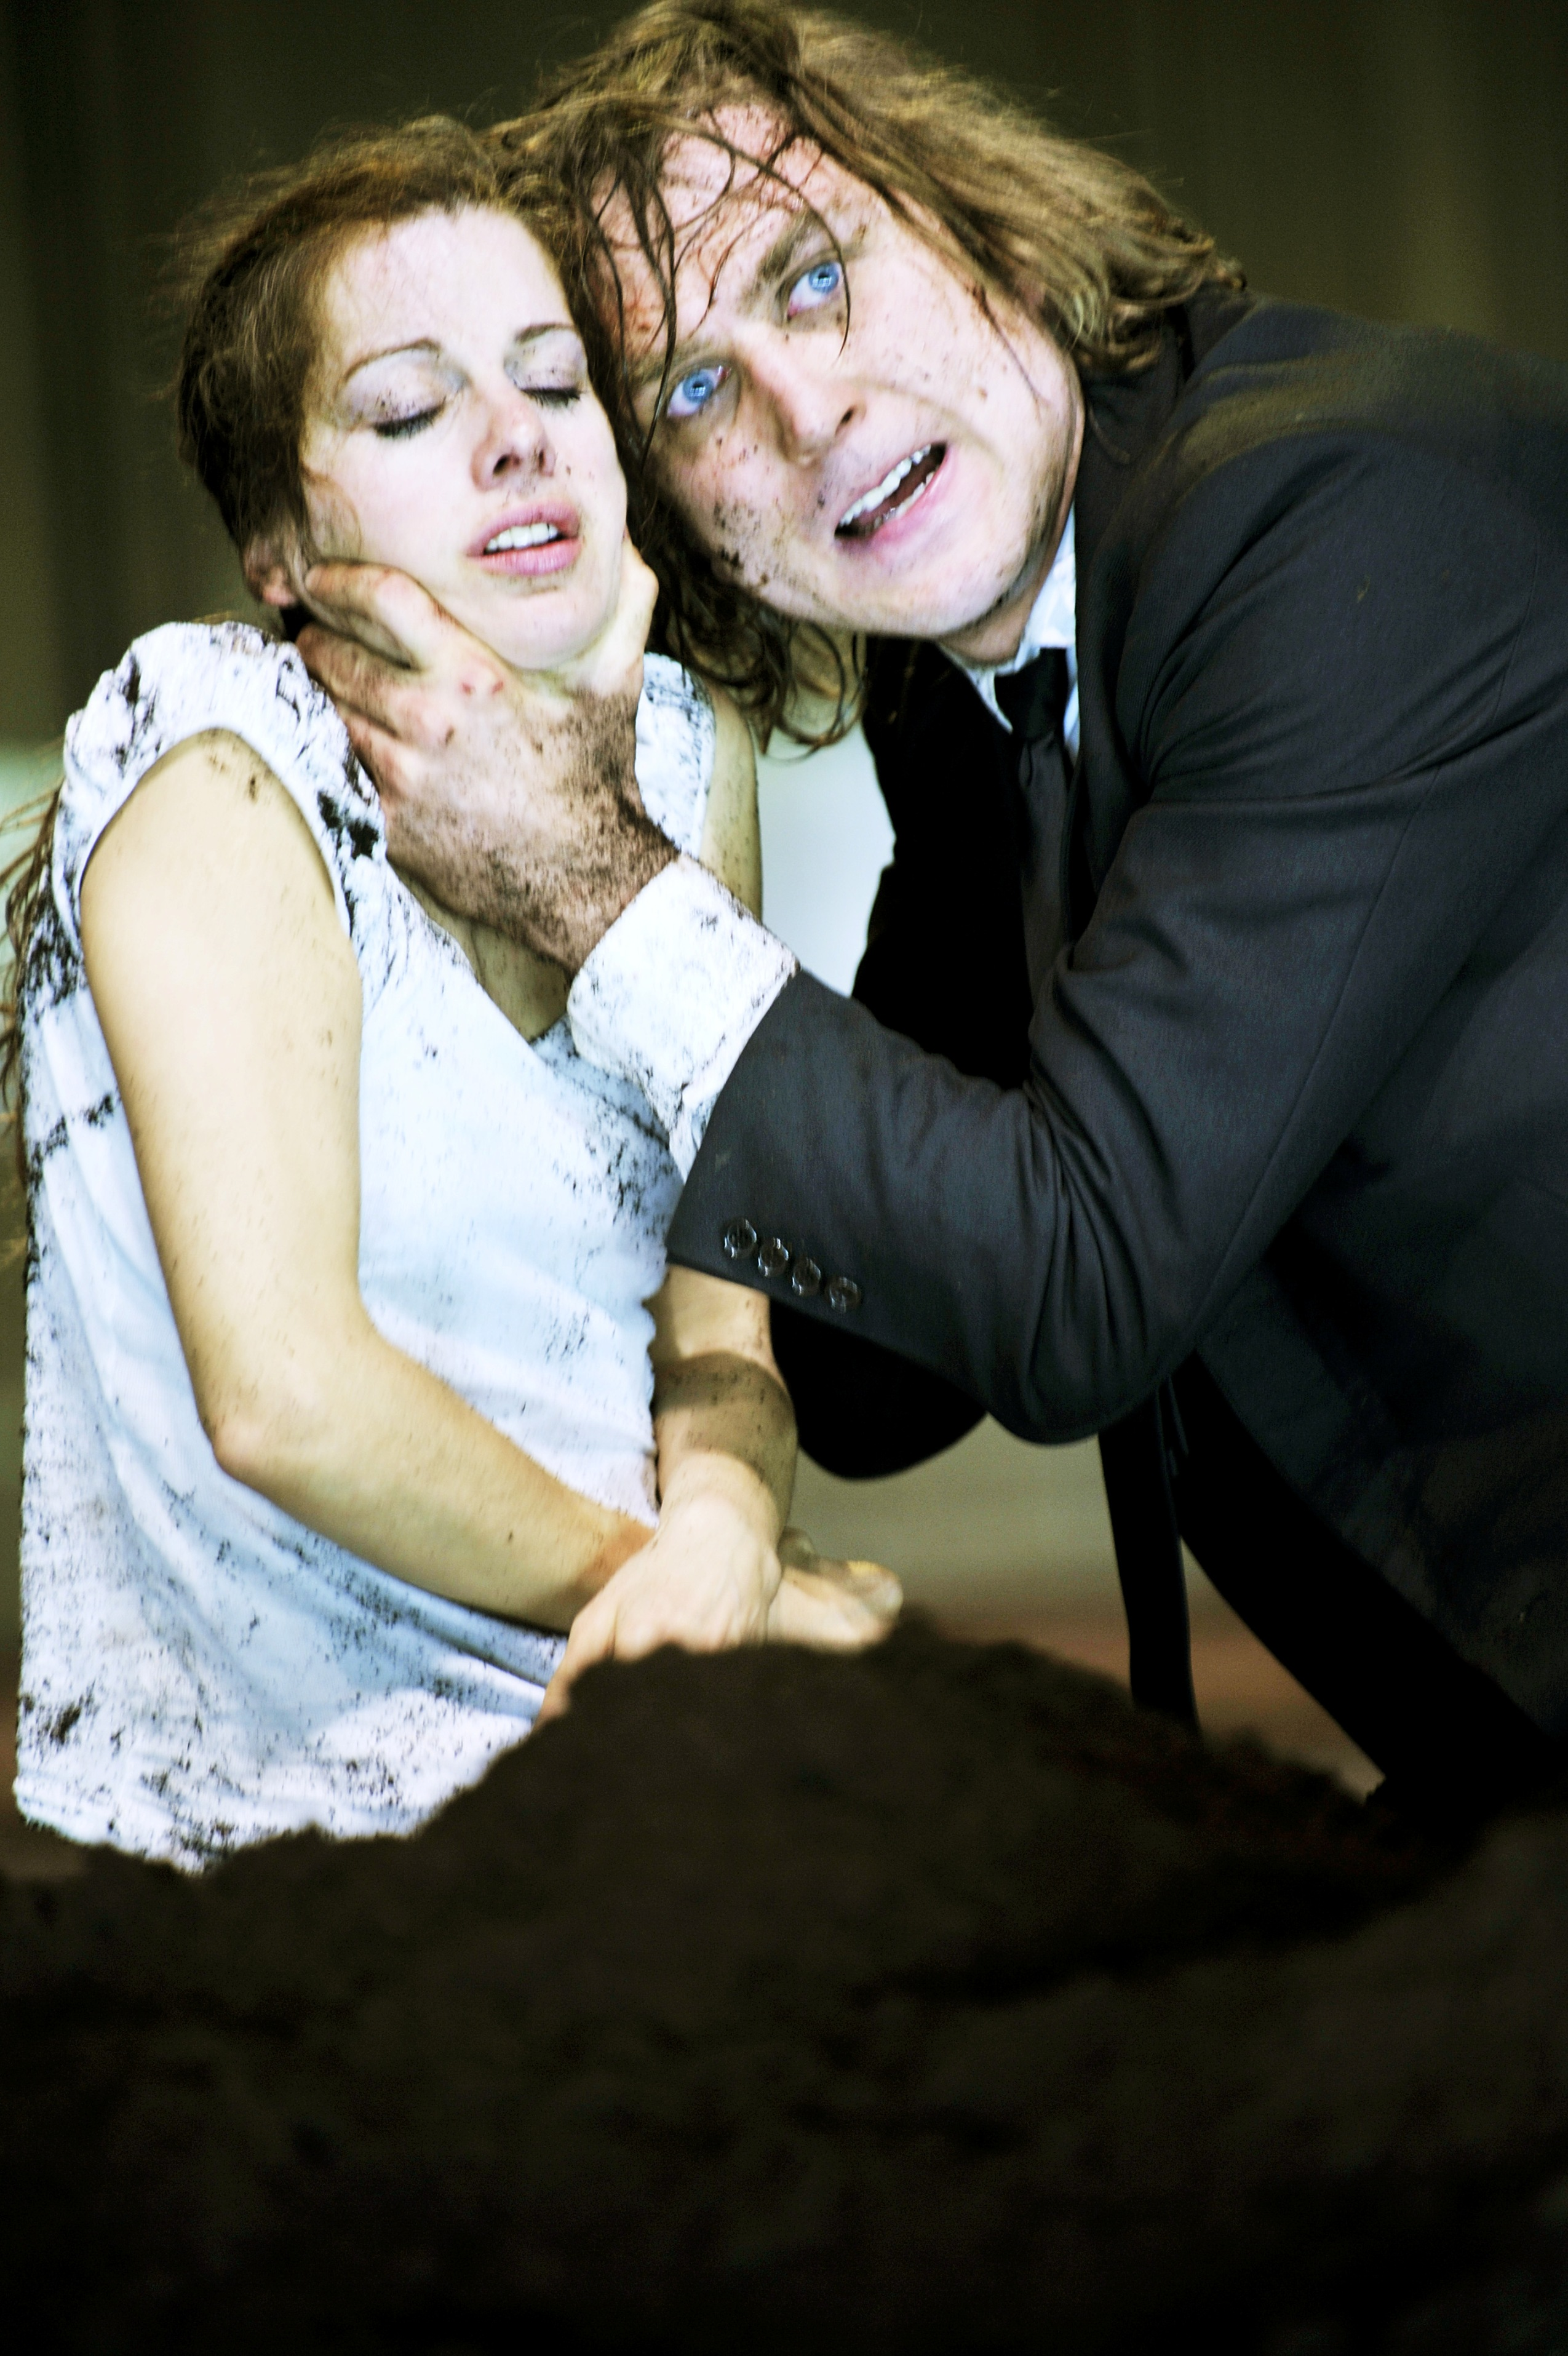 Judith Rosmair as Ophelia and Lars Eidinger as Hamlet in the Schaubuhne's Shakespeare